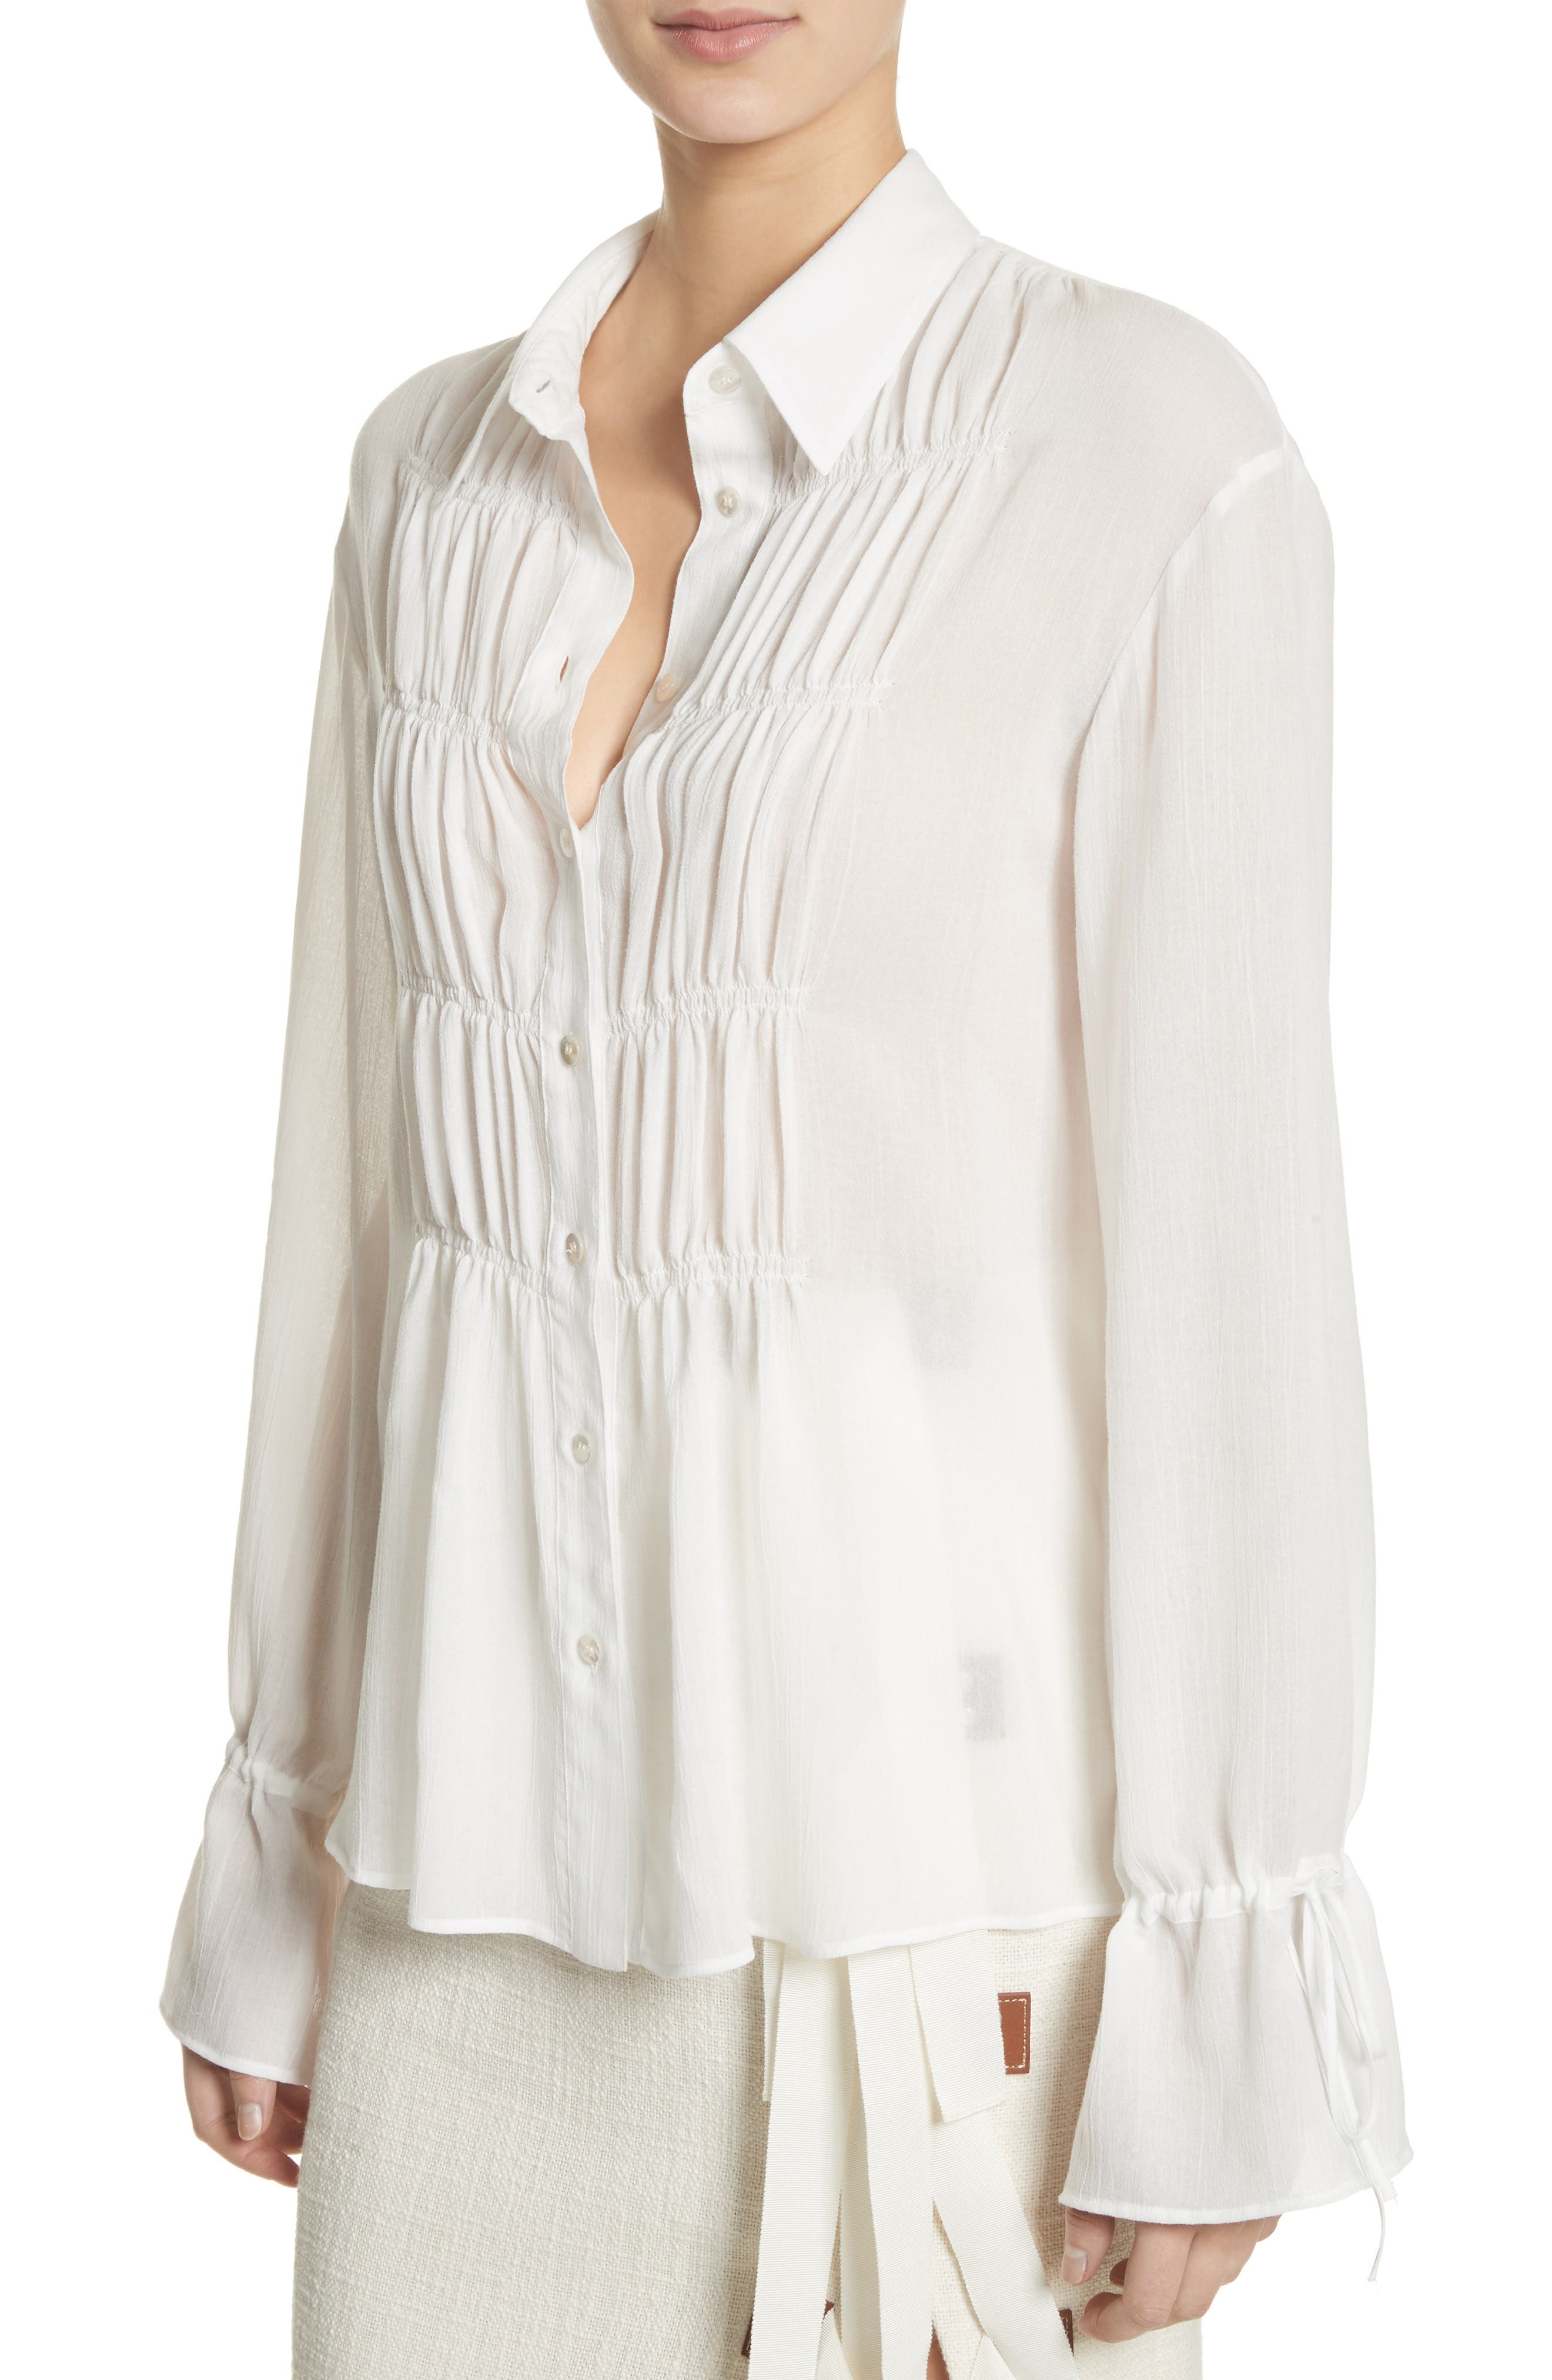 Ruched Detail Blouse,                             Alternate thumbnail 4, color,                             Optic White